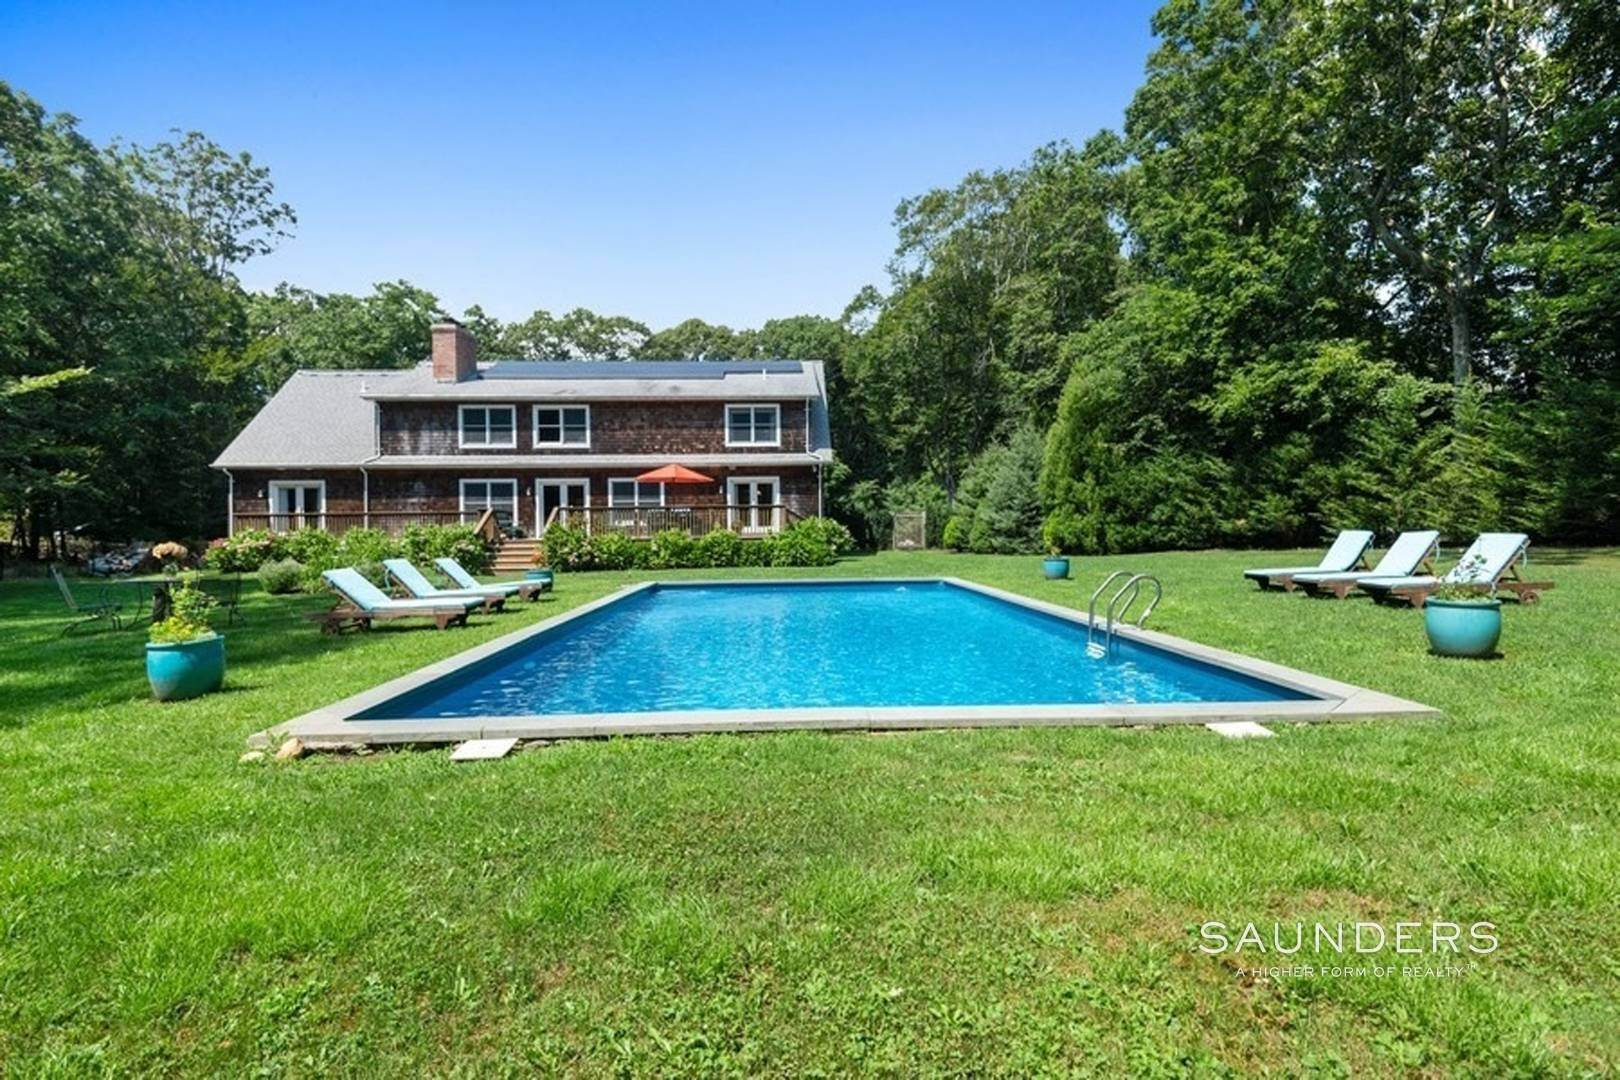 Single Family Homes at New And Bright Summer Home Southampton, Southampton Town, NY 11968